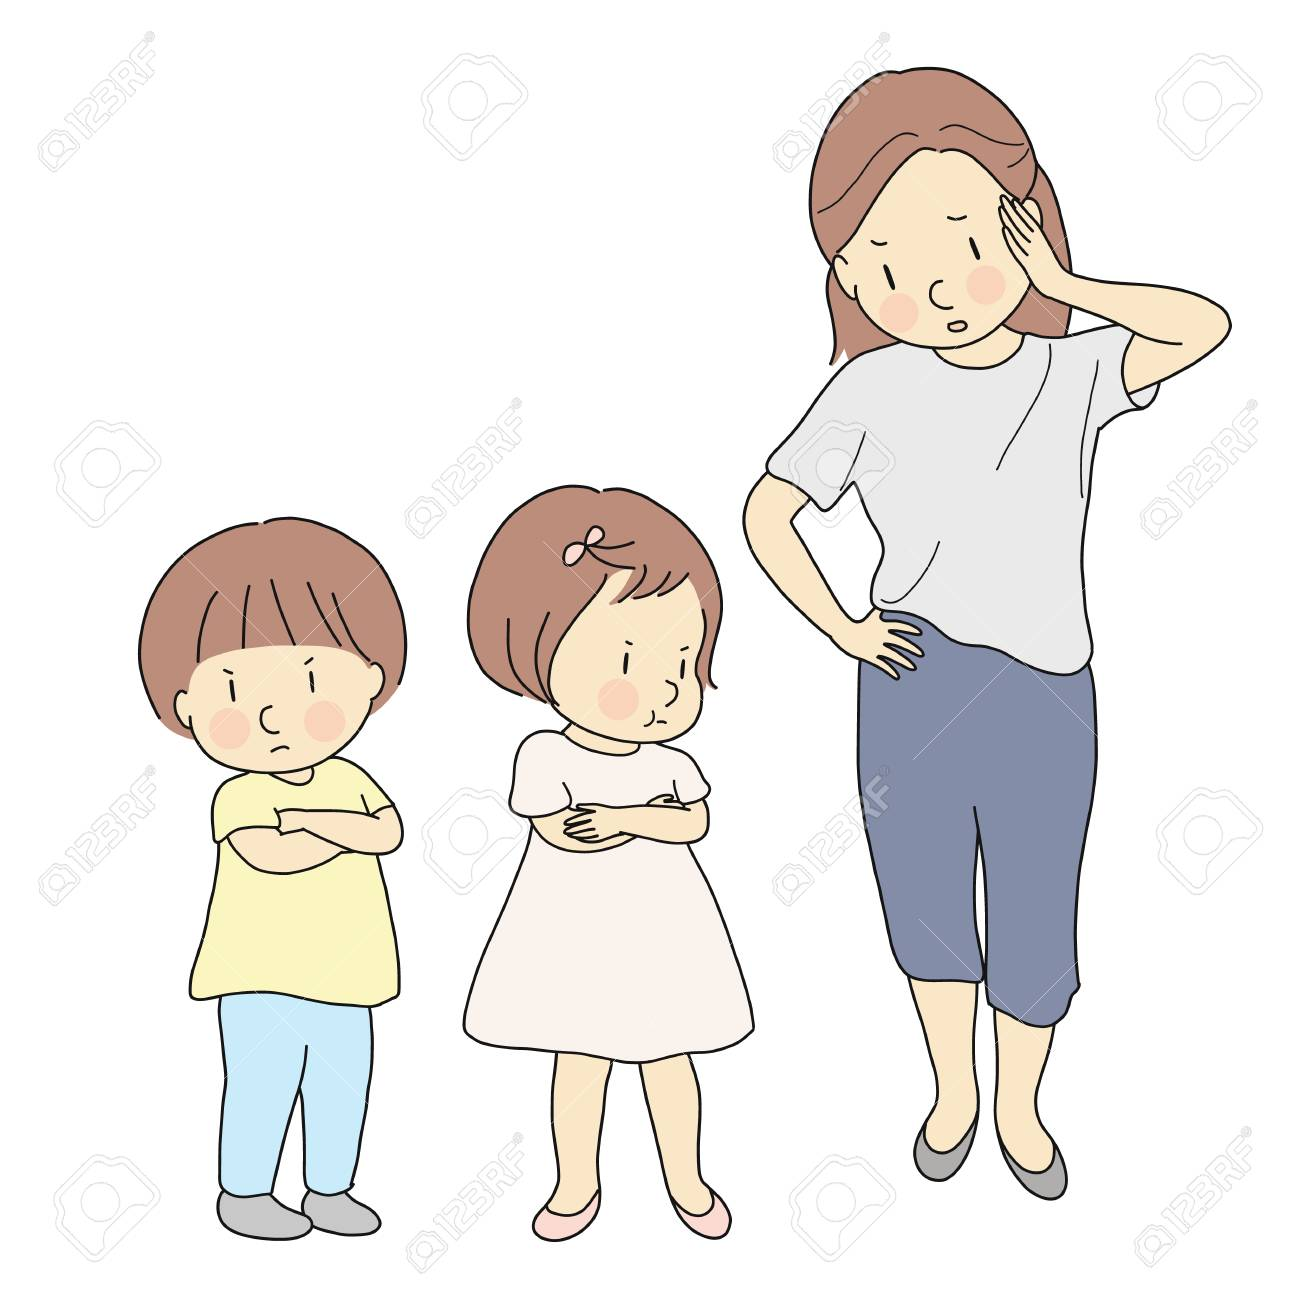 Siblings Fighting Cliparts Free Download Clip Art.